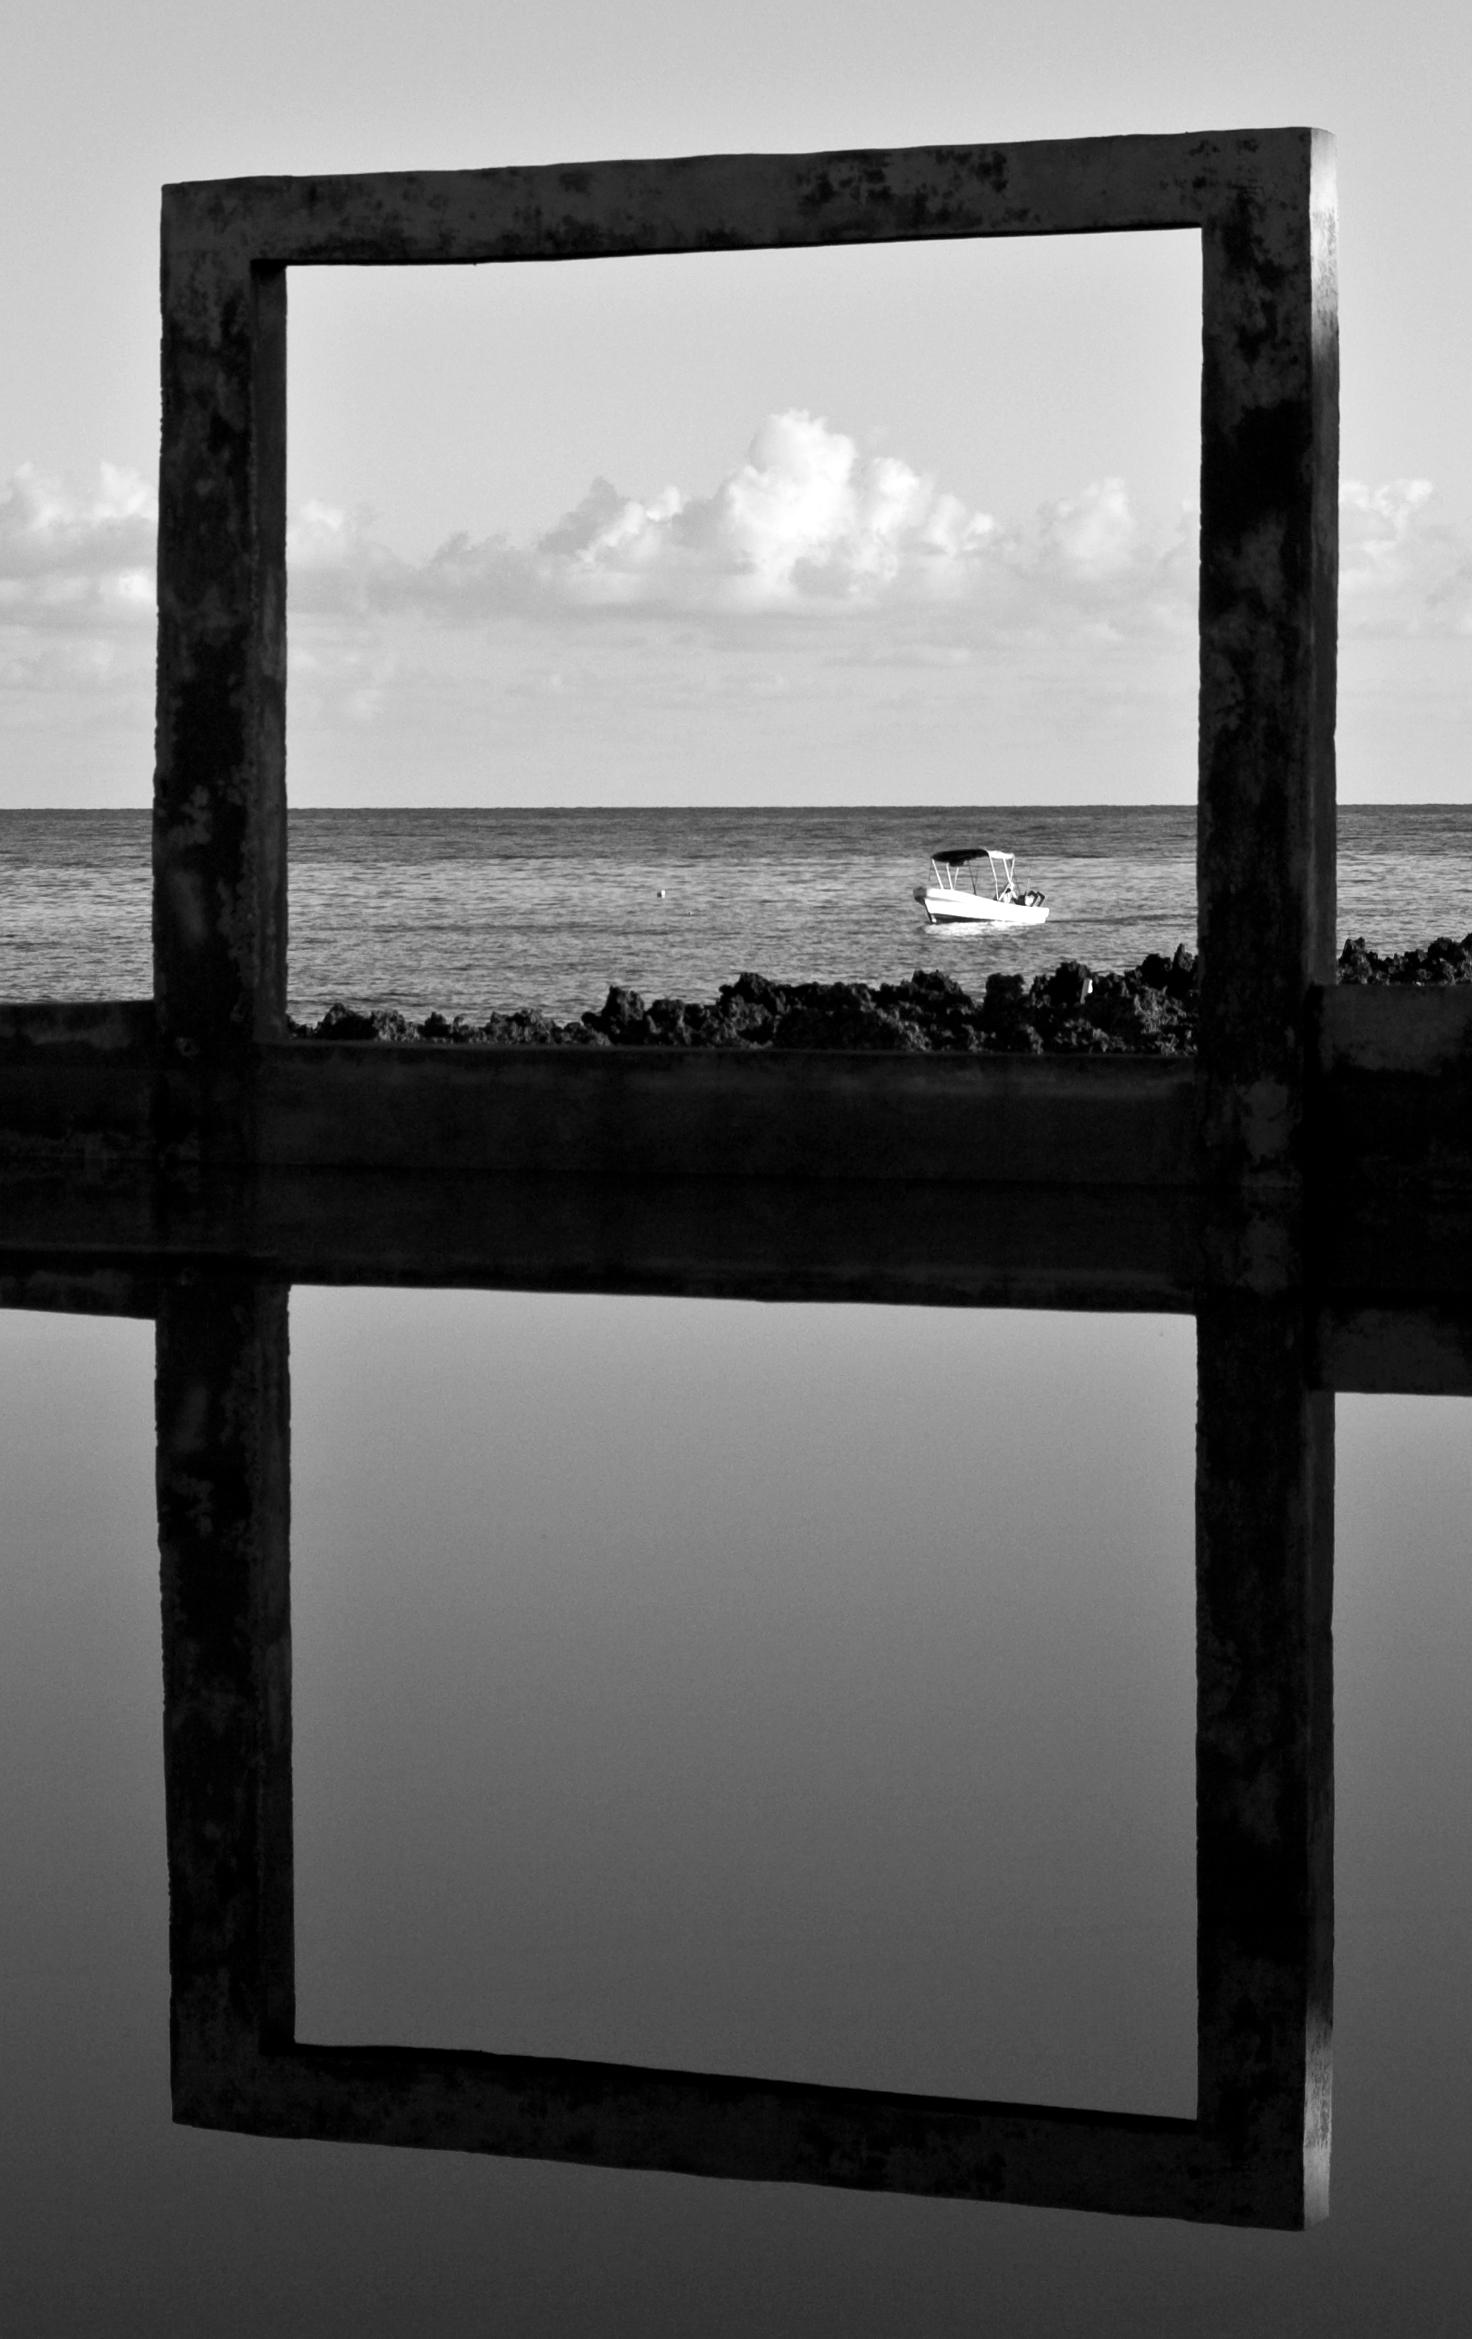 A fishing boat passes behind a concrete frame and swimming pool off the coast of Roatan, Honduras.